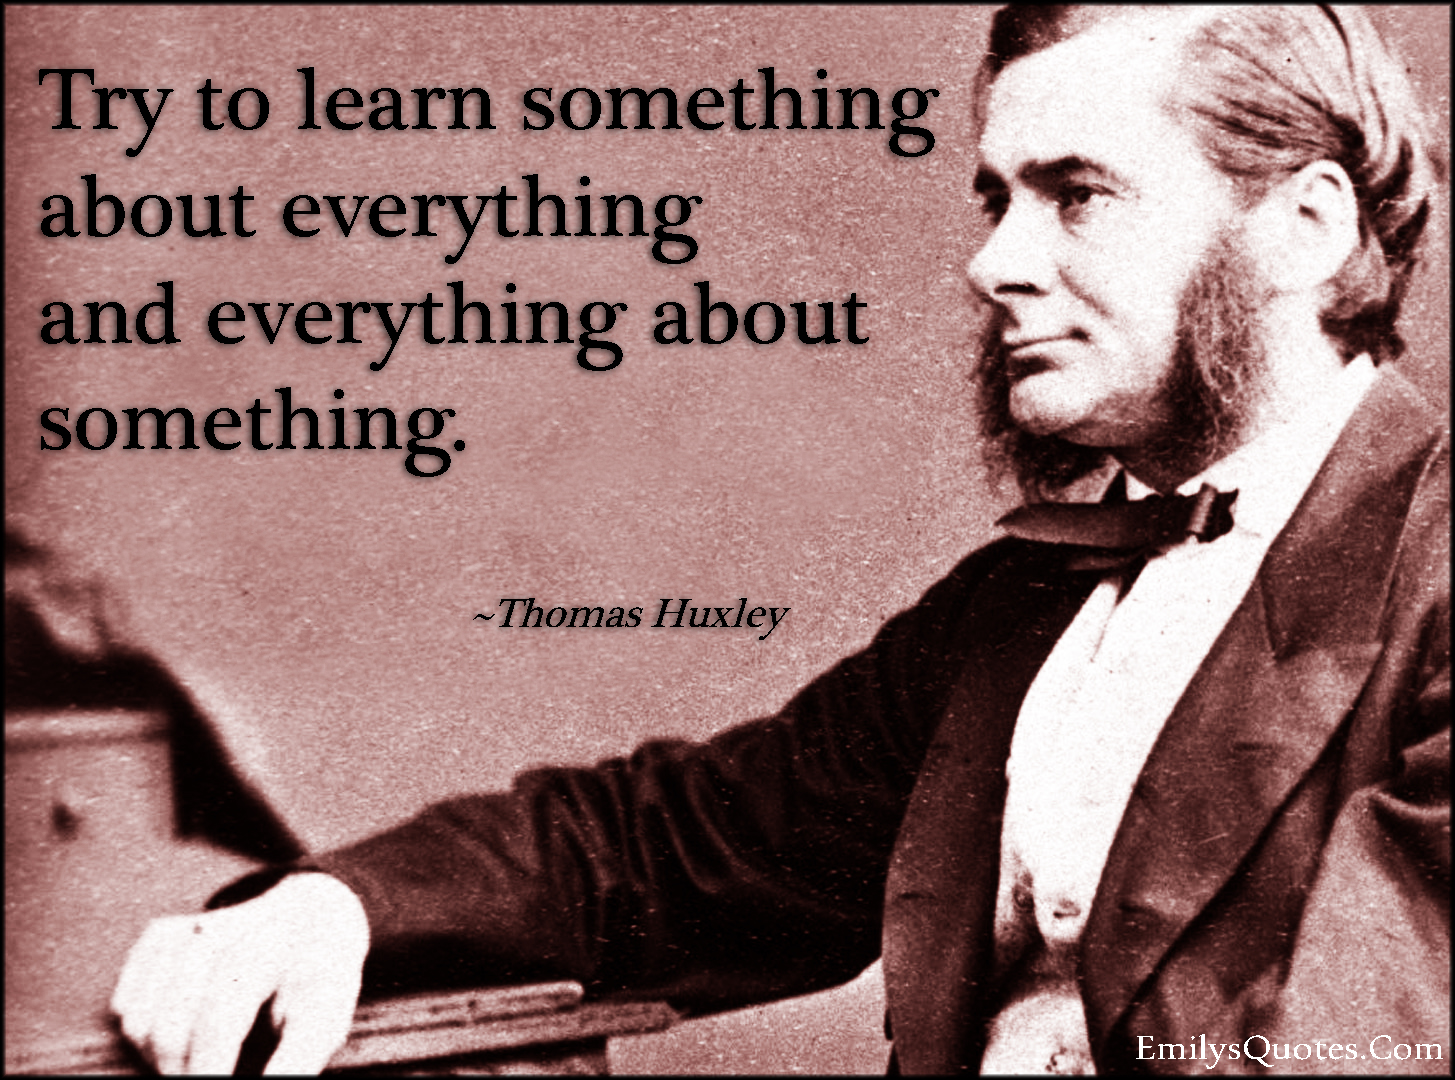 EmilysQuotes.Com - learn, everything, advice, intelligent, Thomas Huxley